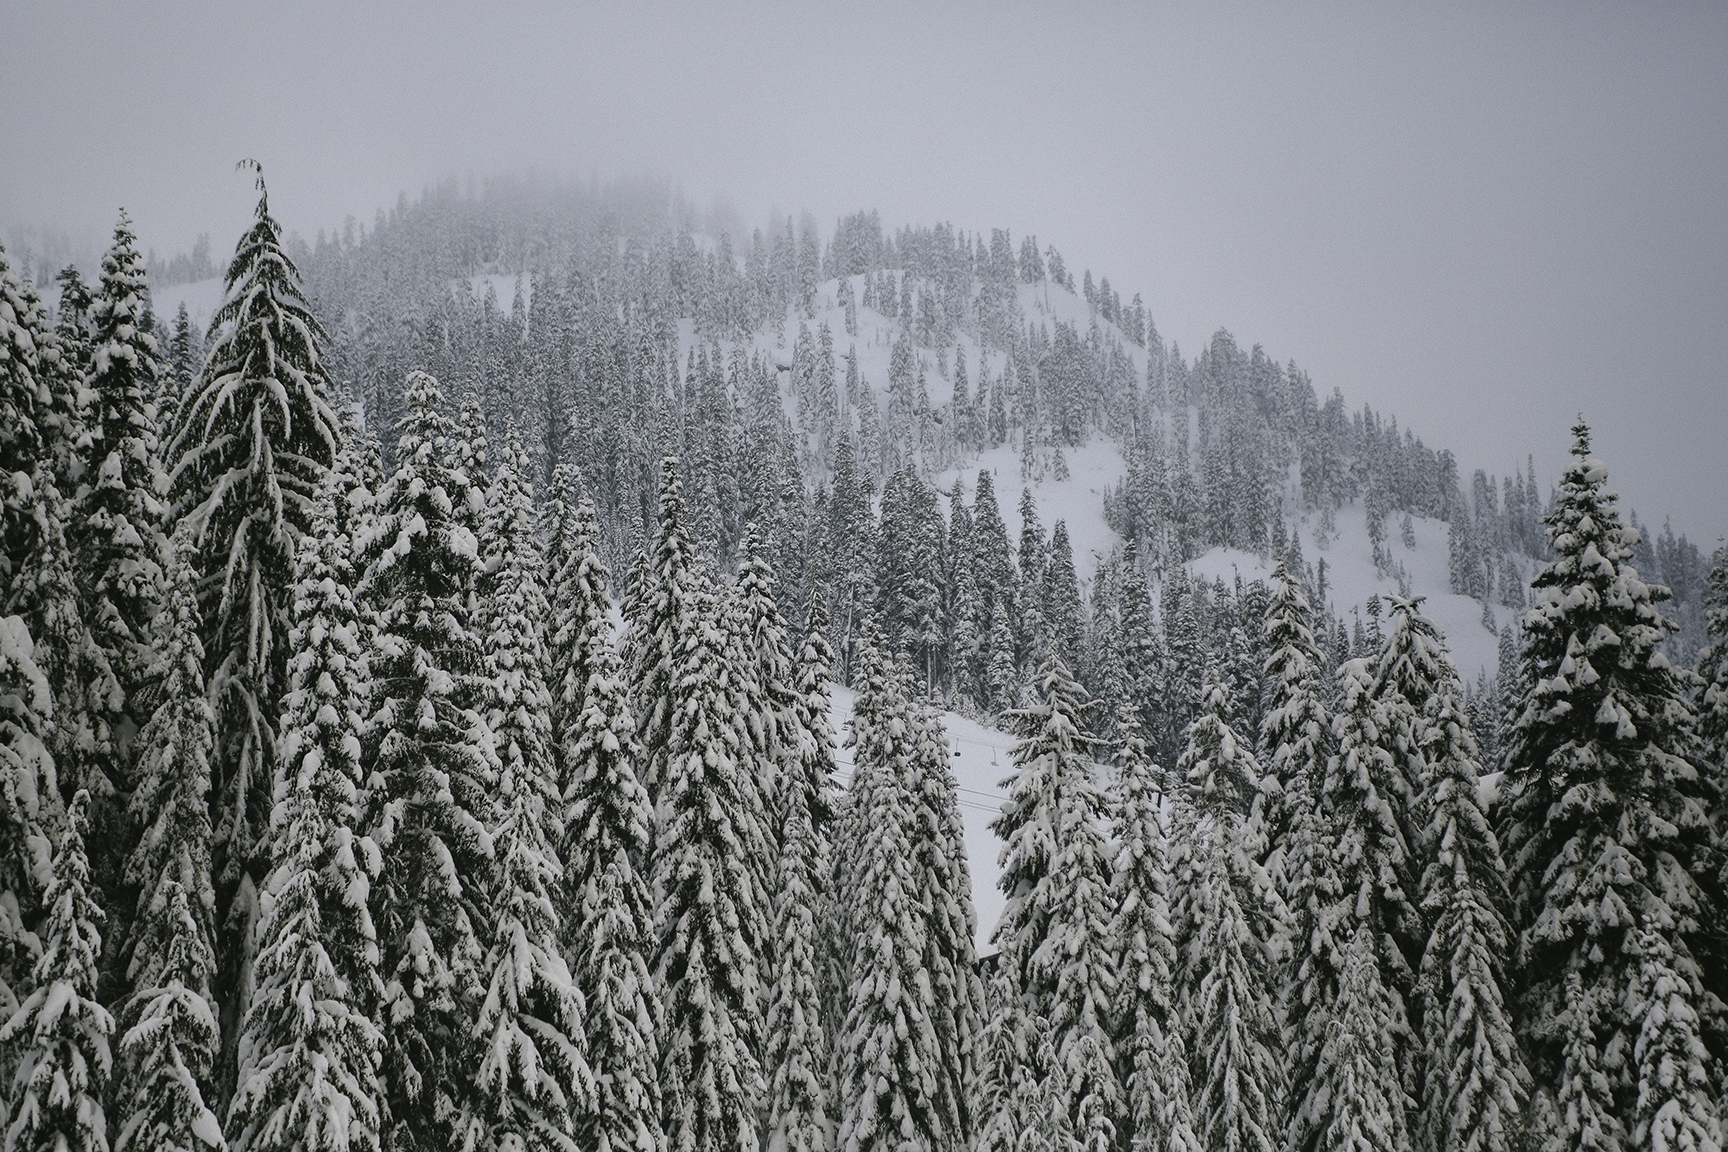 a-bird-of-passage-snowy-moutain